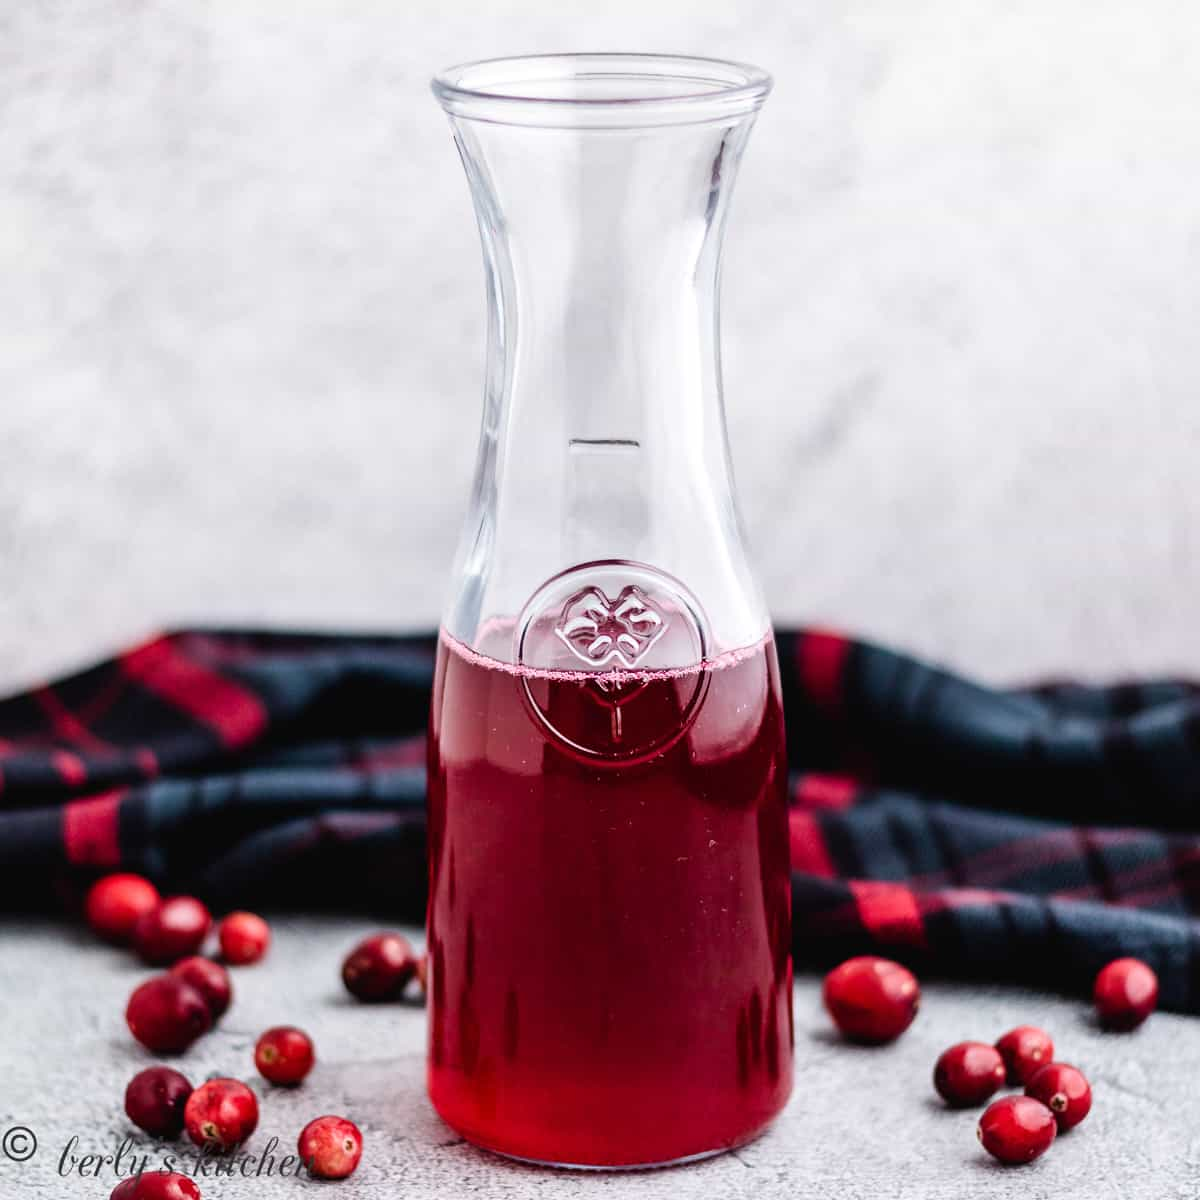 The tart cranberry syrup in a pitcher.